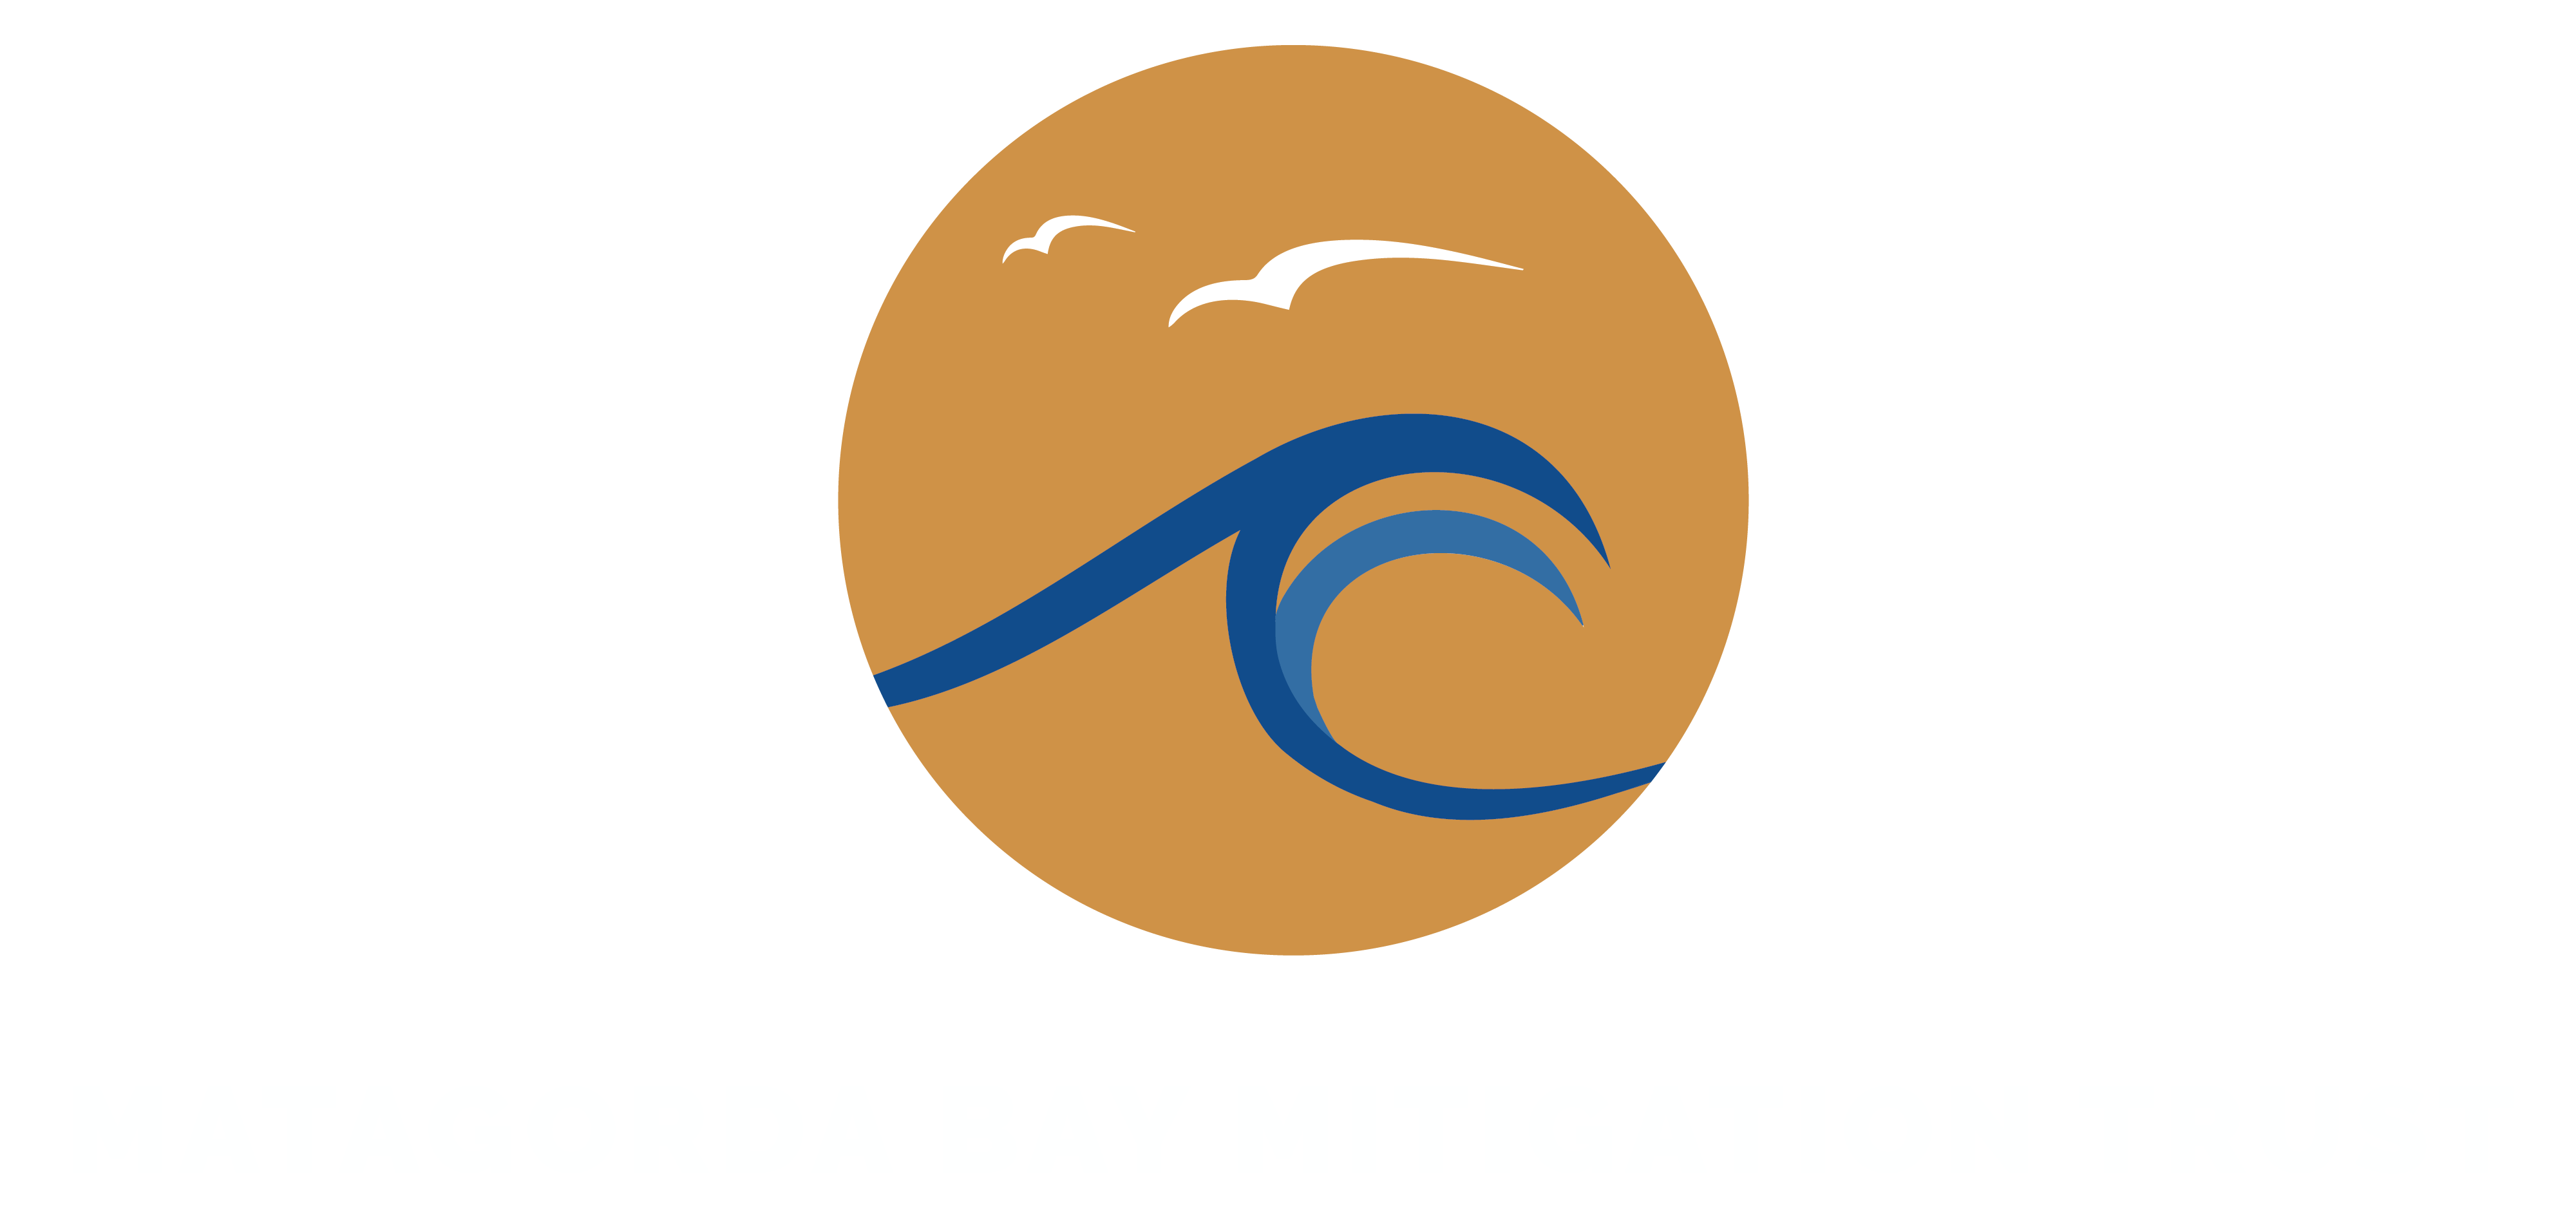 Matagorda Bay Mitigation Trust